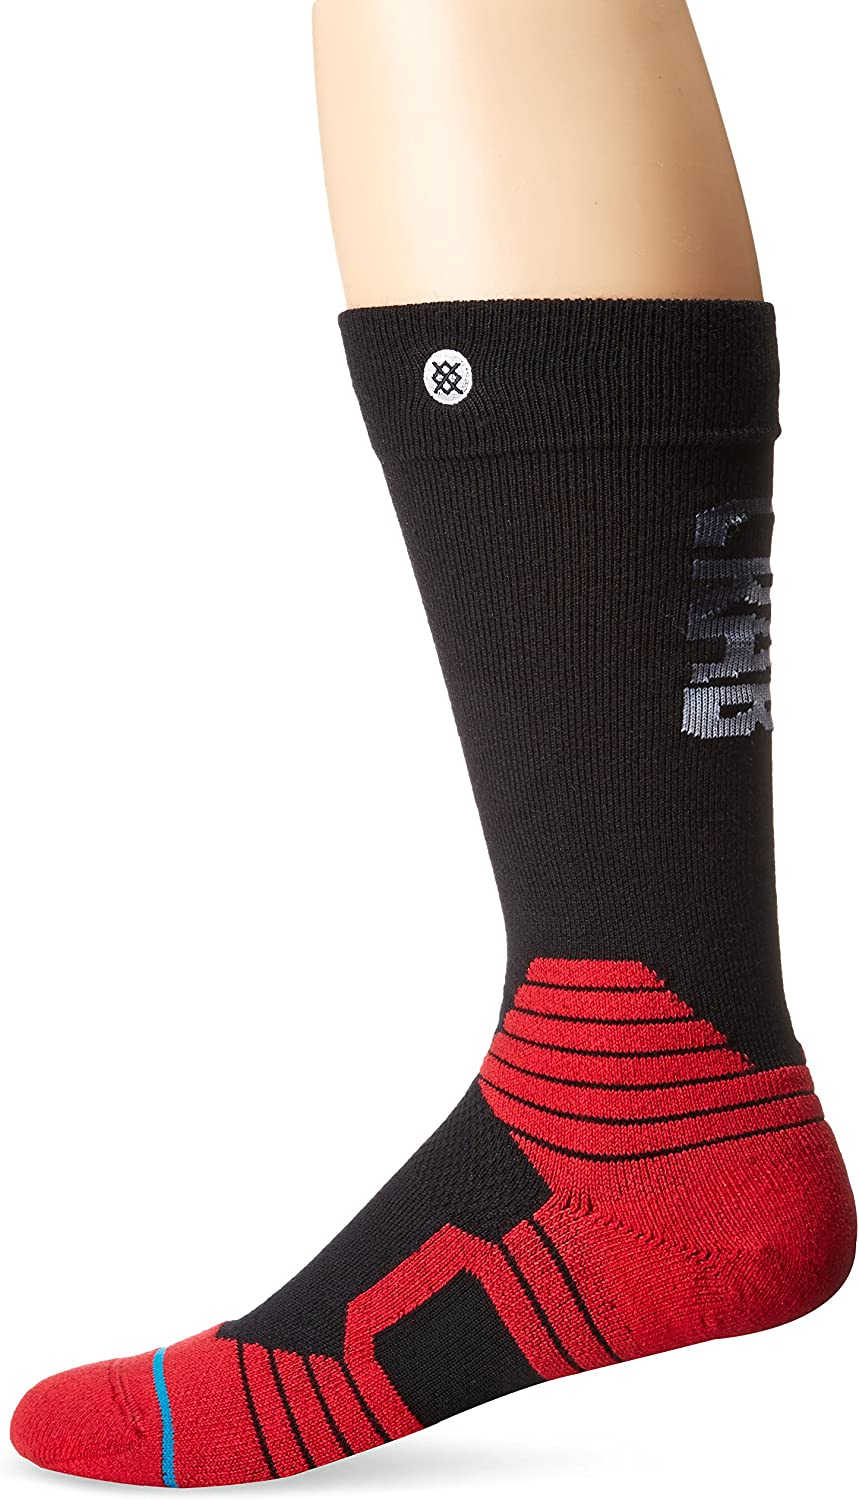 Stance Mens Crab Grab Pinch Merino Wool Insulating Graduated Compression Claw Over the Calf Arch Support Snowboard Sock